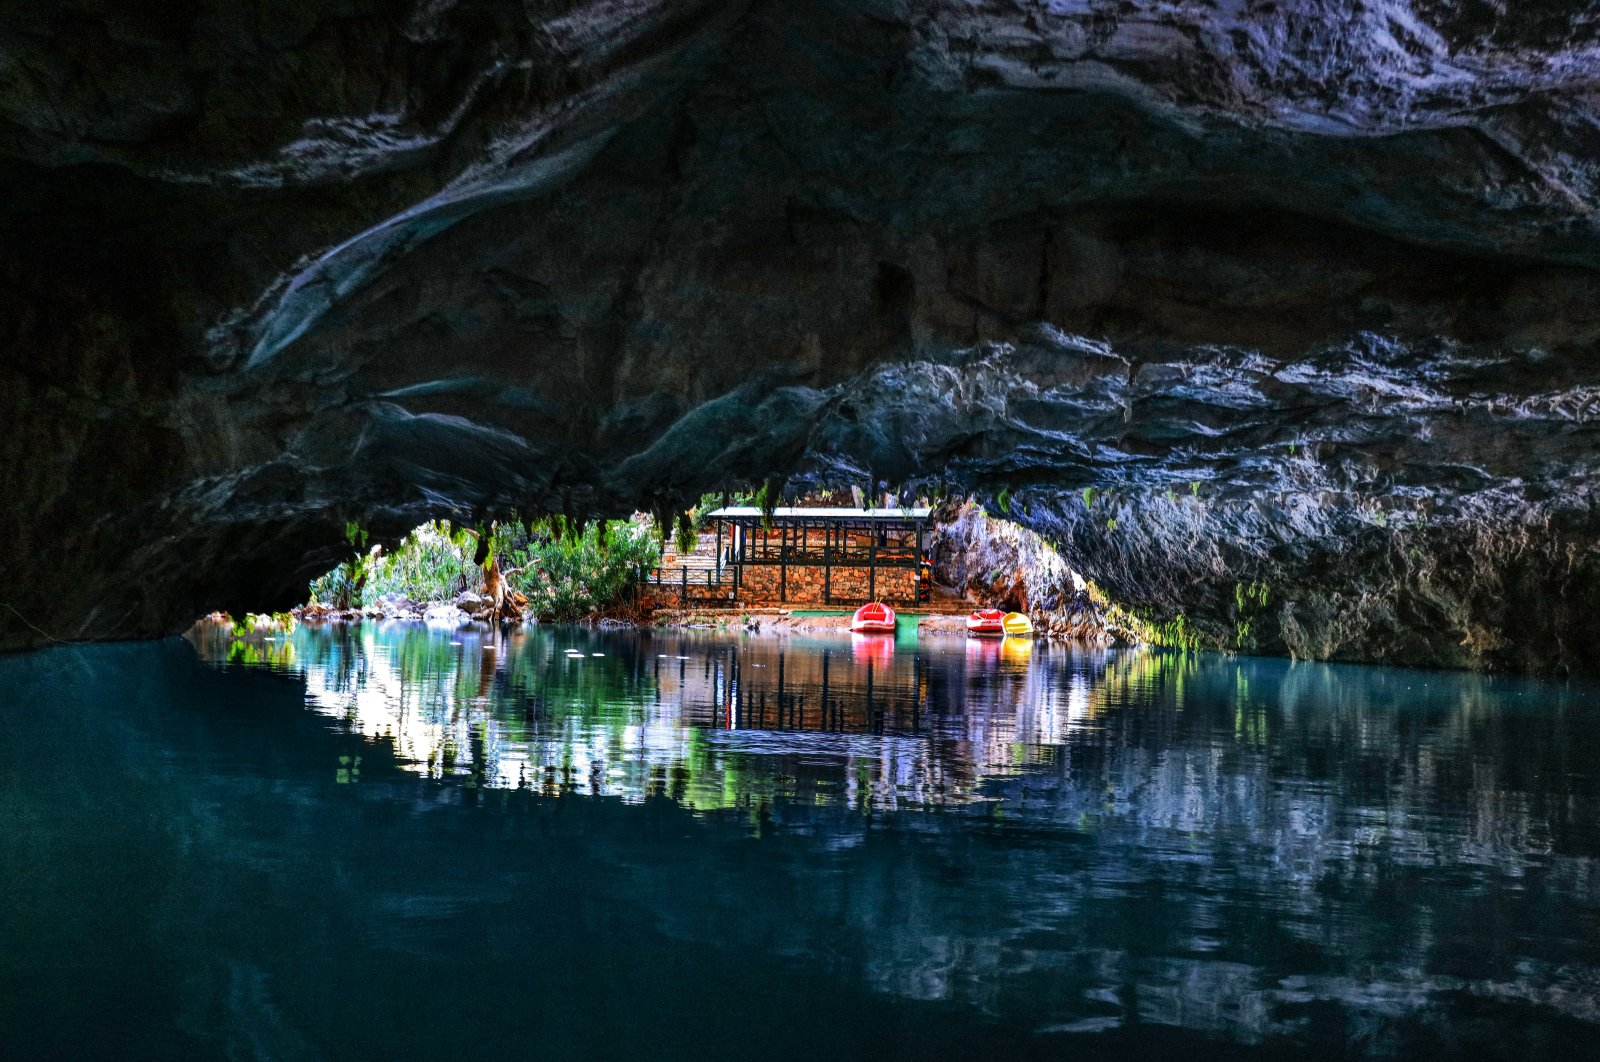 The entrance to Altınbeşik Cave and its lake with its clear, pristine waters and a wooden hut in the background, Antalya, southern Turkey. (AA Photo)